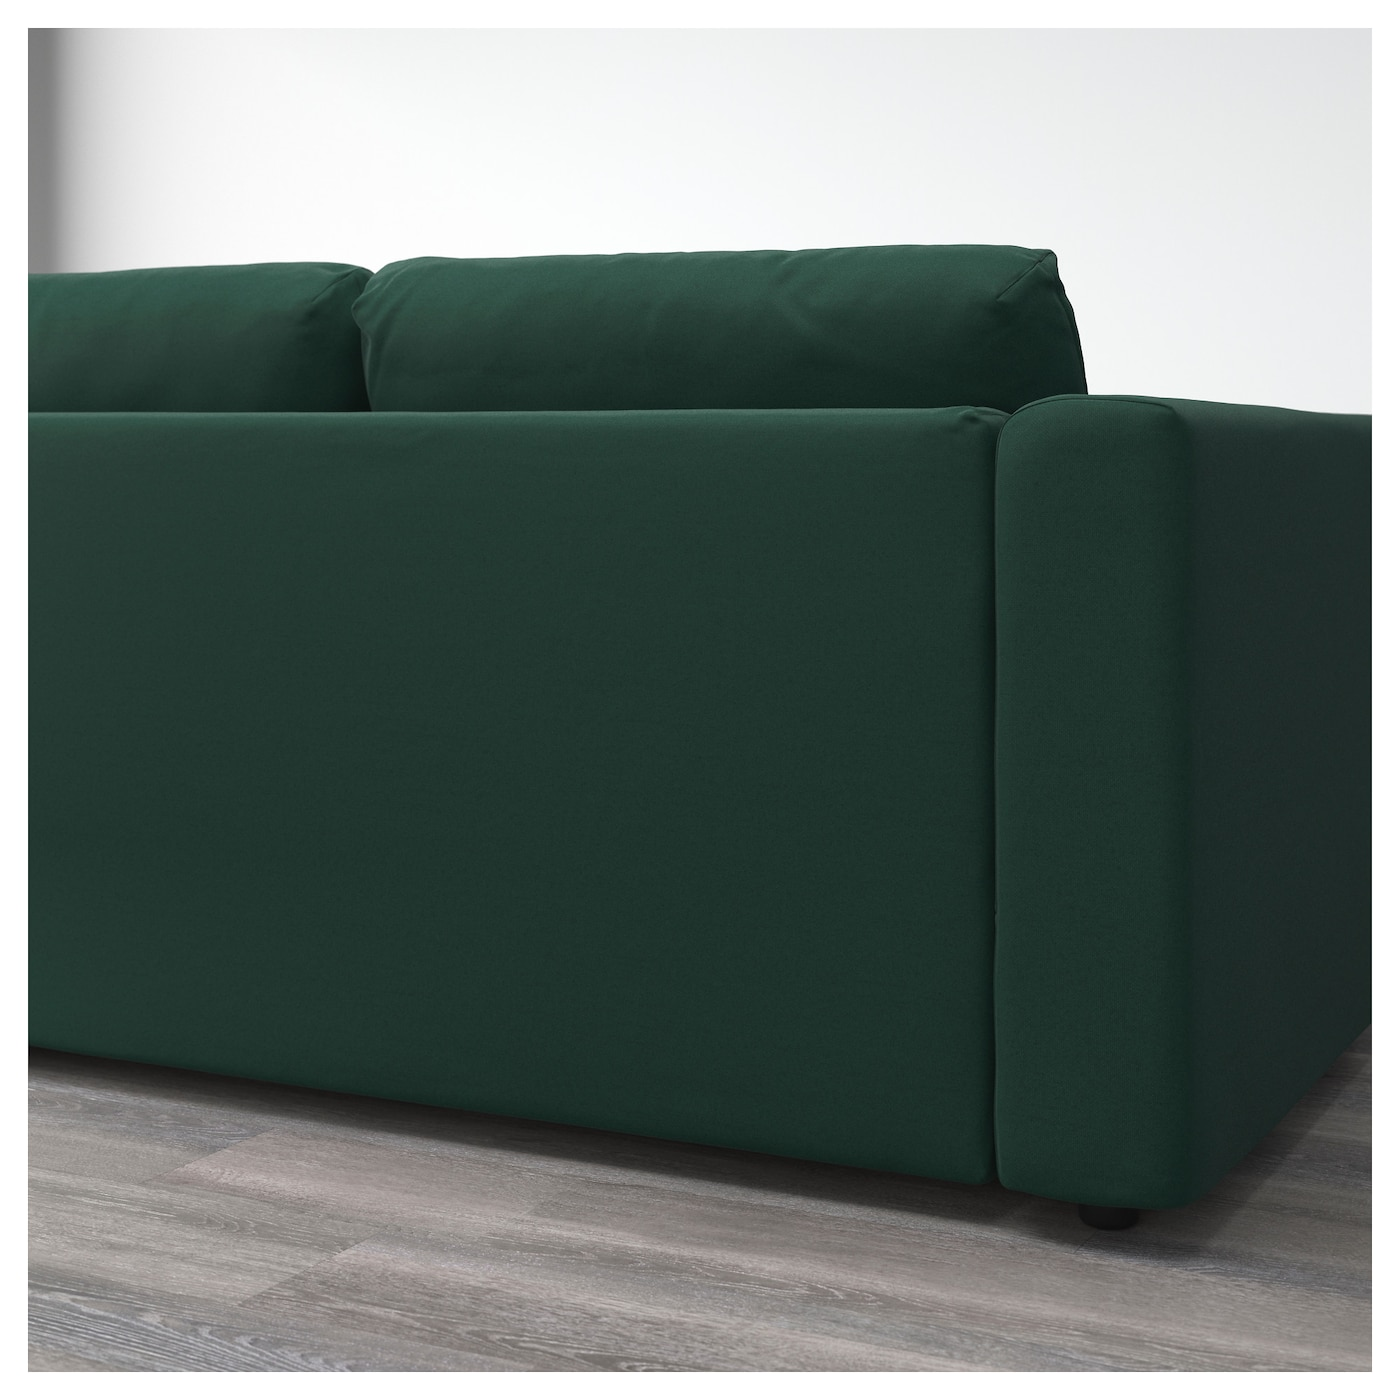 Vimle 3 seat sofa with chaise longue gunnared dark green for 3 seat sofa with chaise